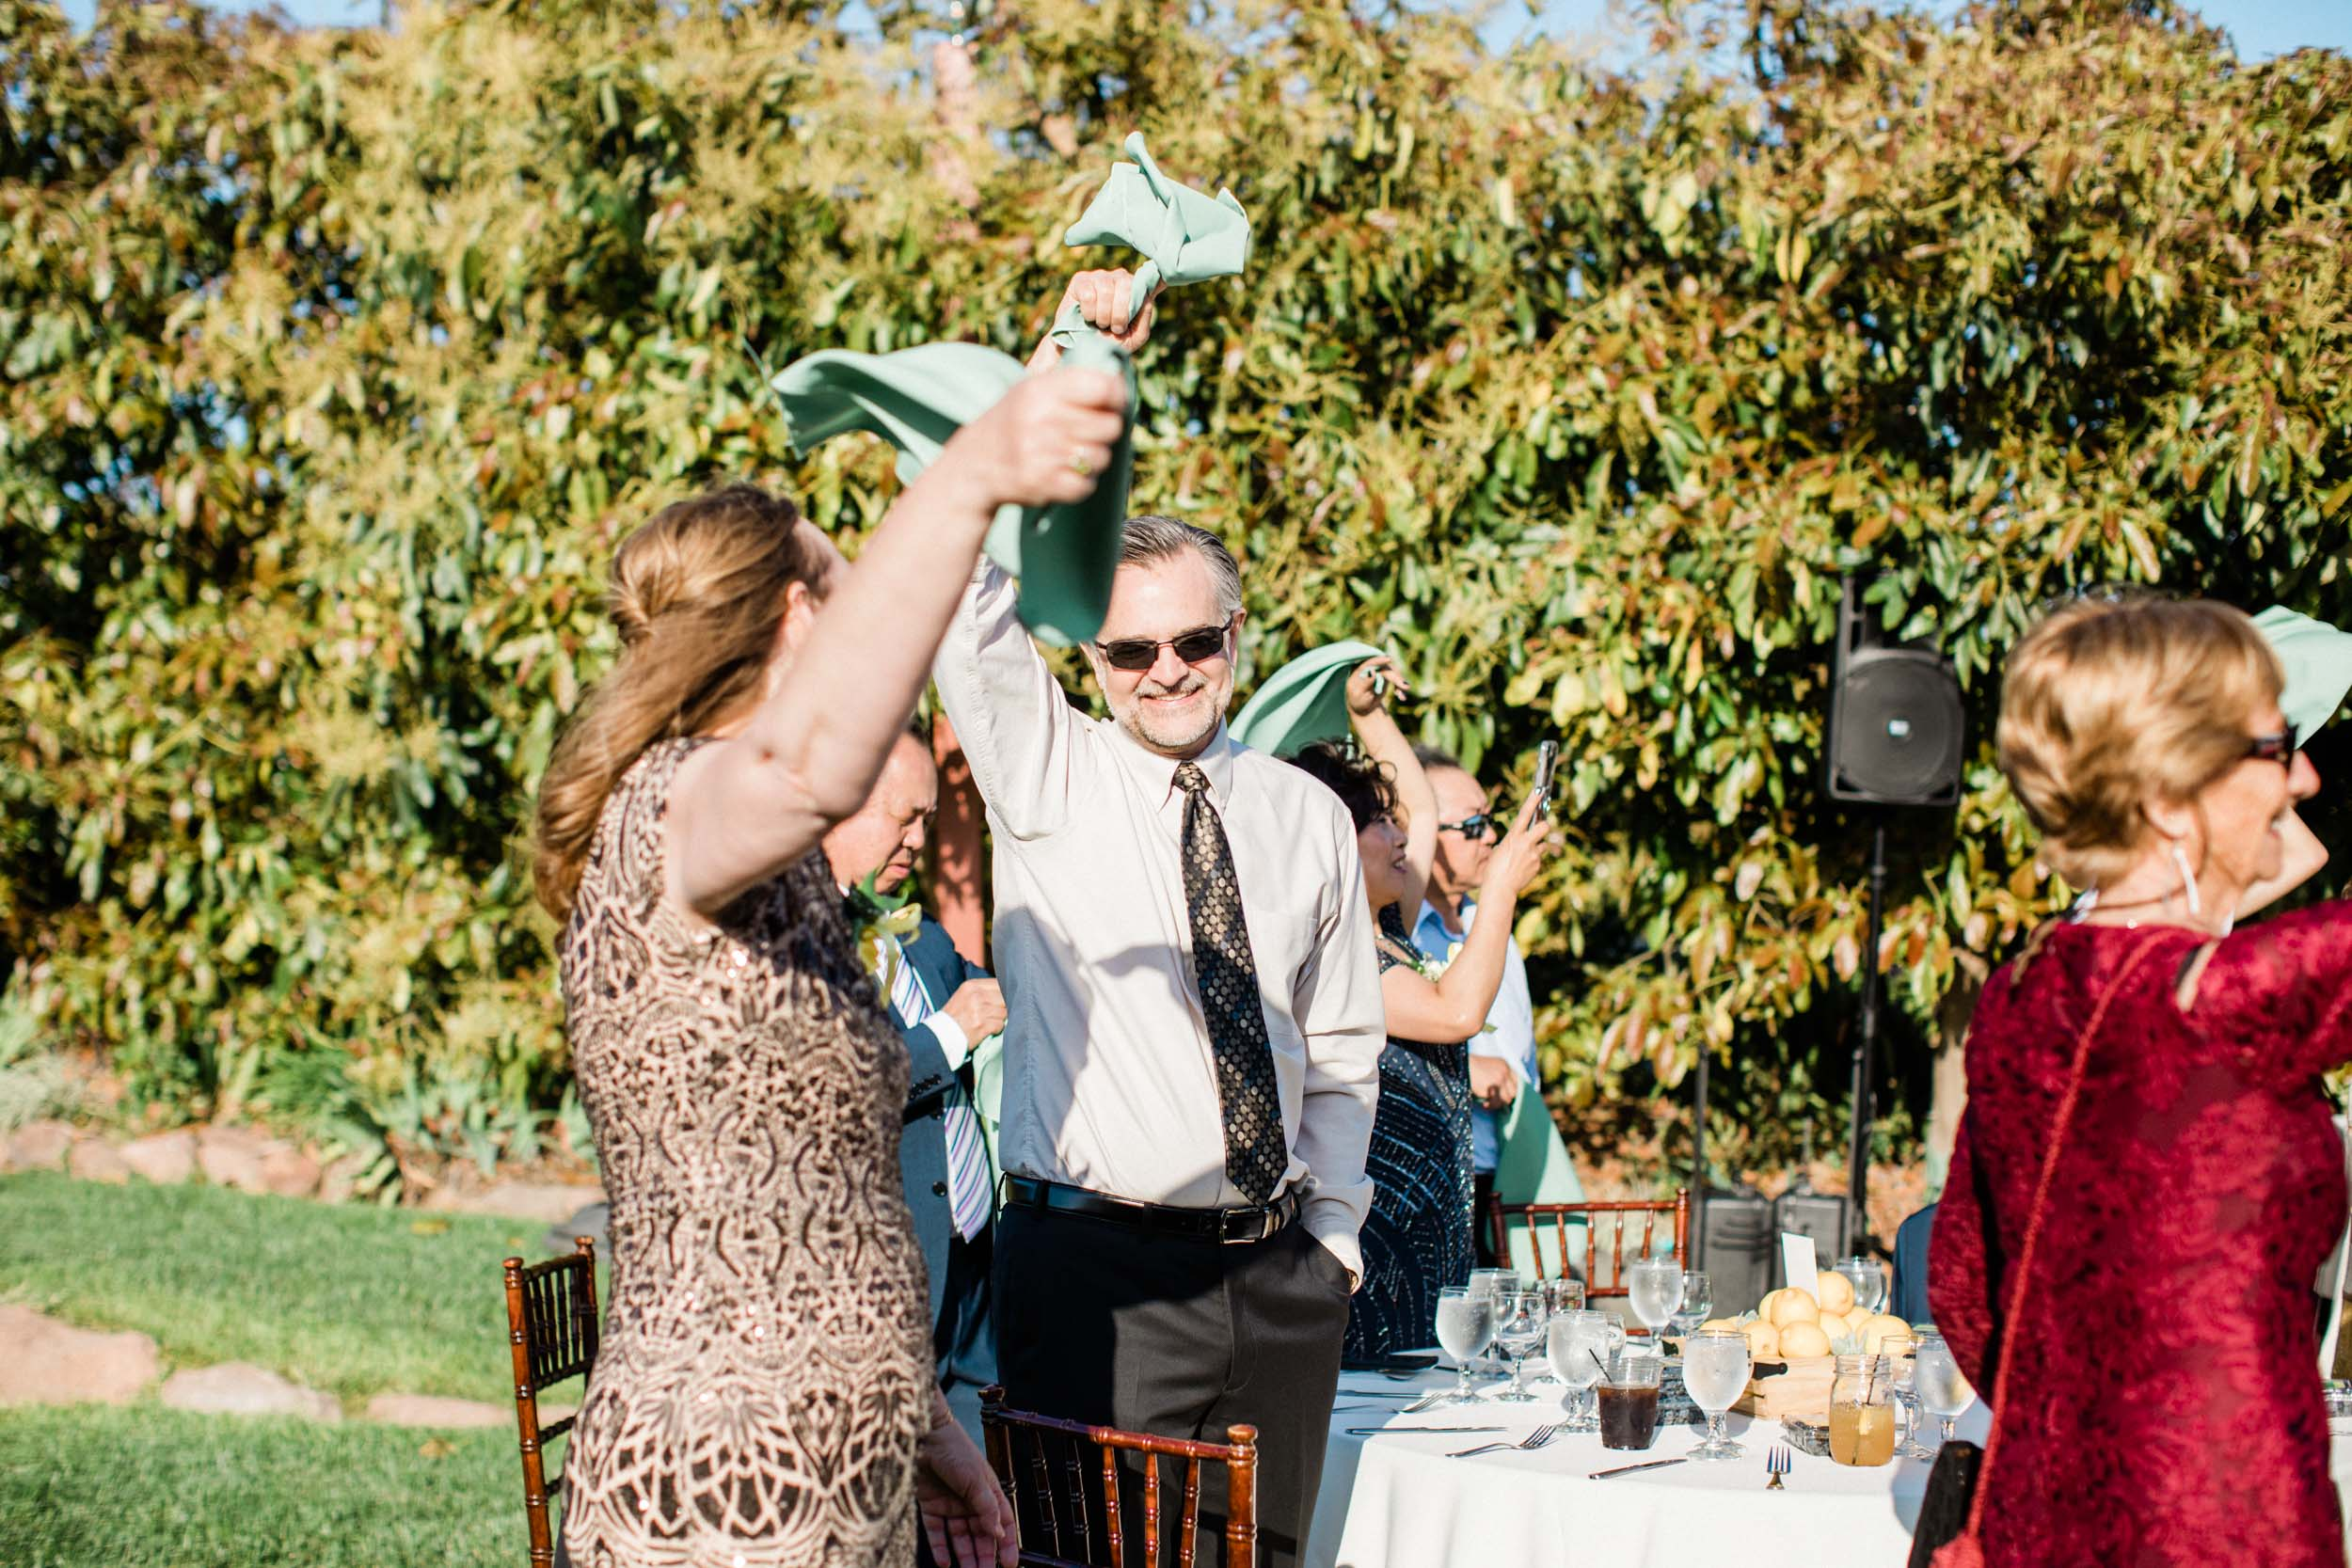 BKM-Photography-Gerry-Ranch-Southern-California-Wedding-0126.jpg